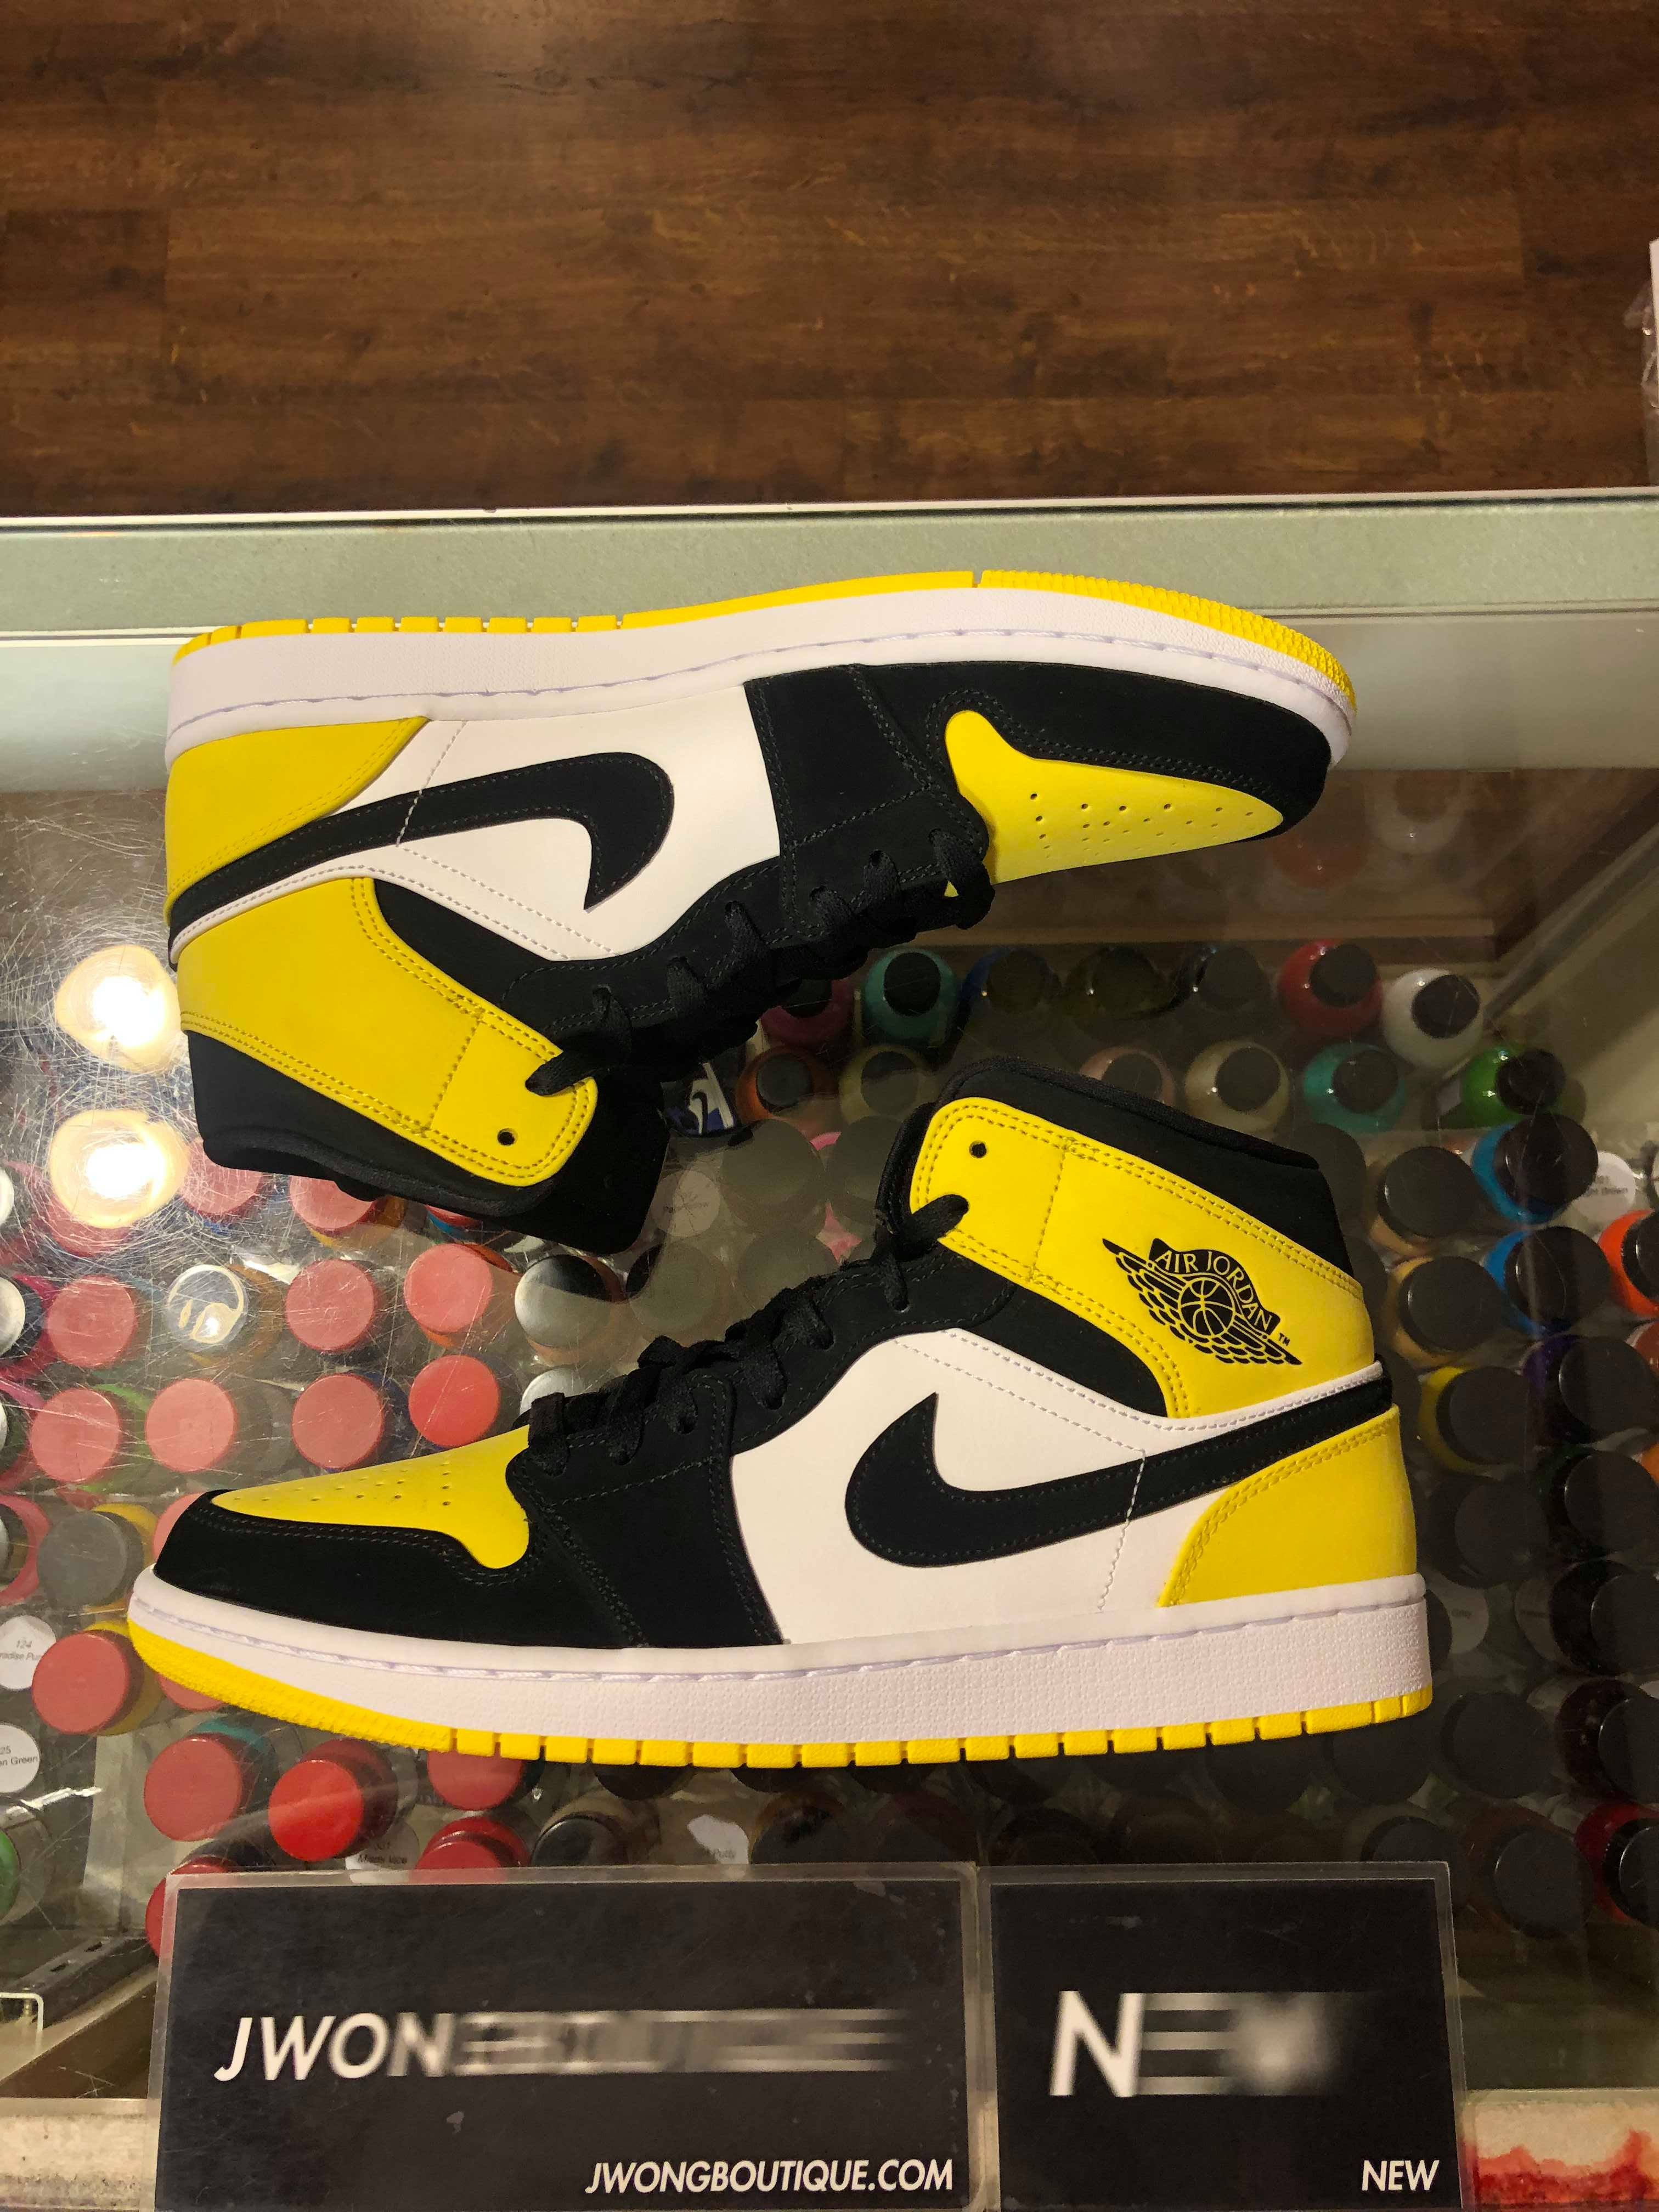 6f511c9bf47a1 2019 Nike Air Jordan I Mid Yellow Toe Black | Jwong Boutique